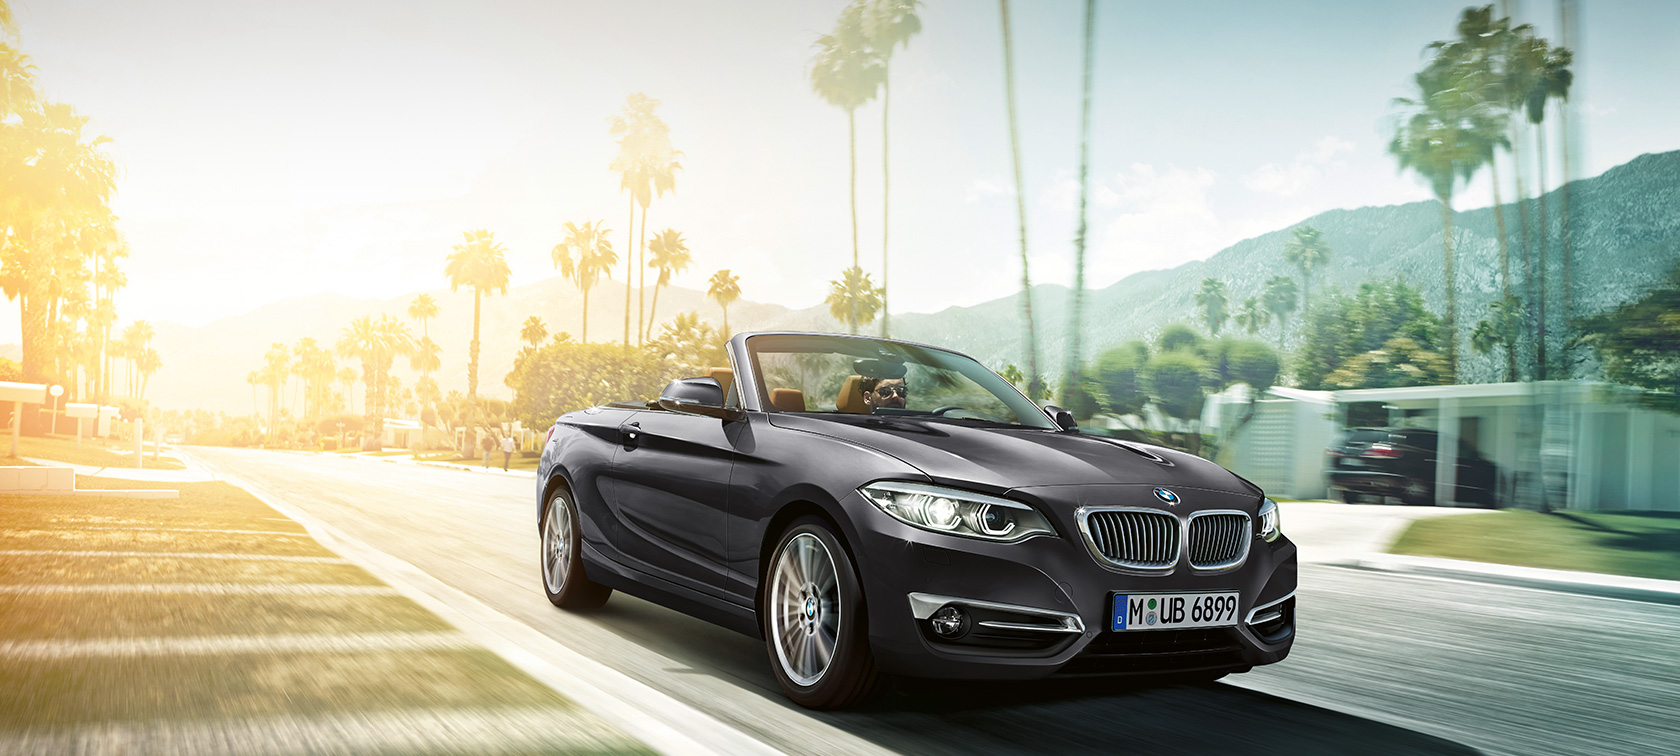 BMW 2 Series Convertible, driving shot